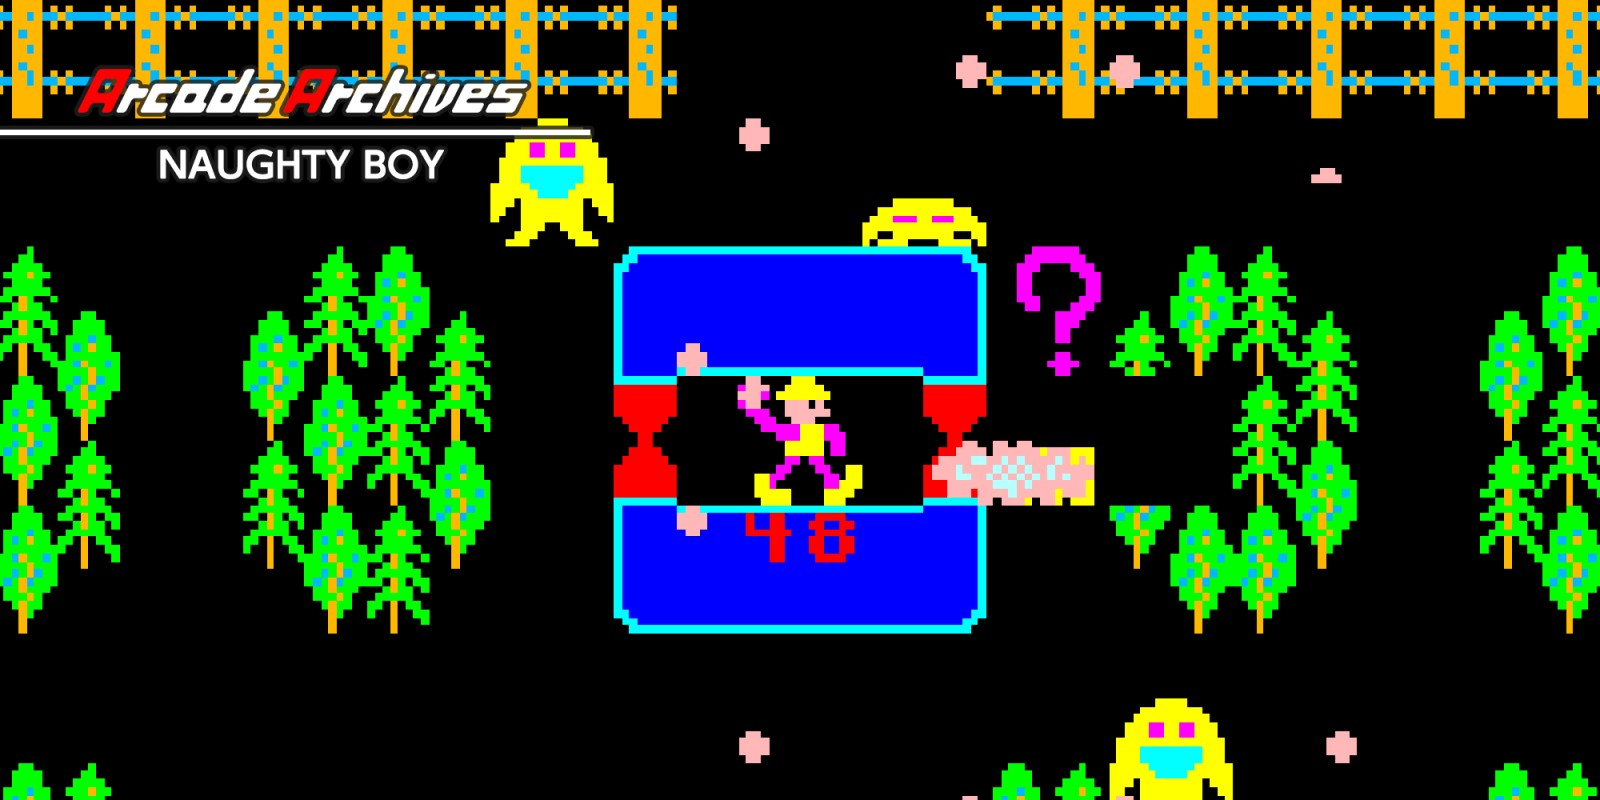 Arcade Archives NAUGHTY BOY